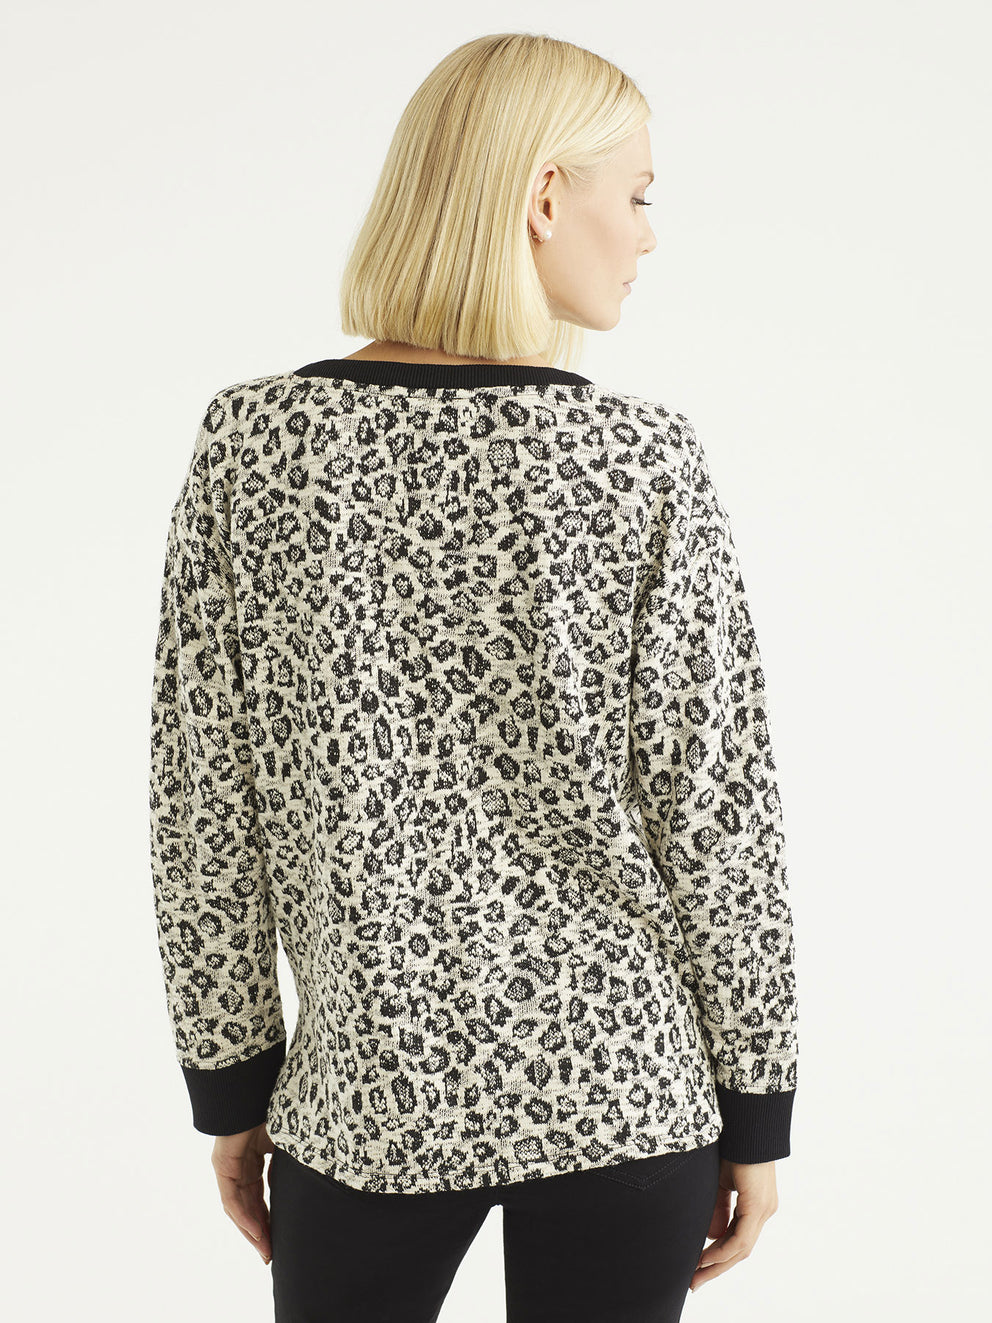 Cheetah Knit Pullover Top Color Cheetah Print